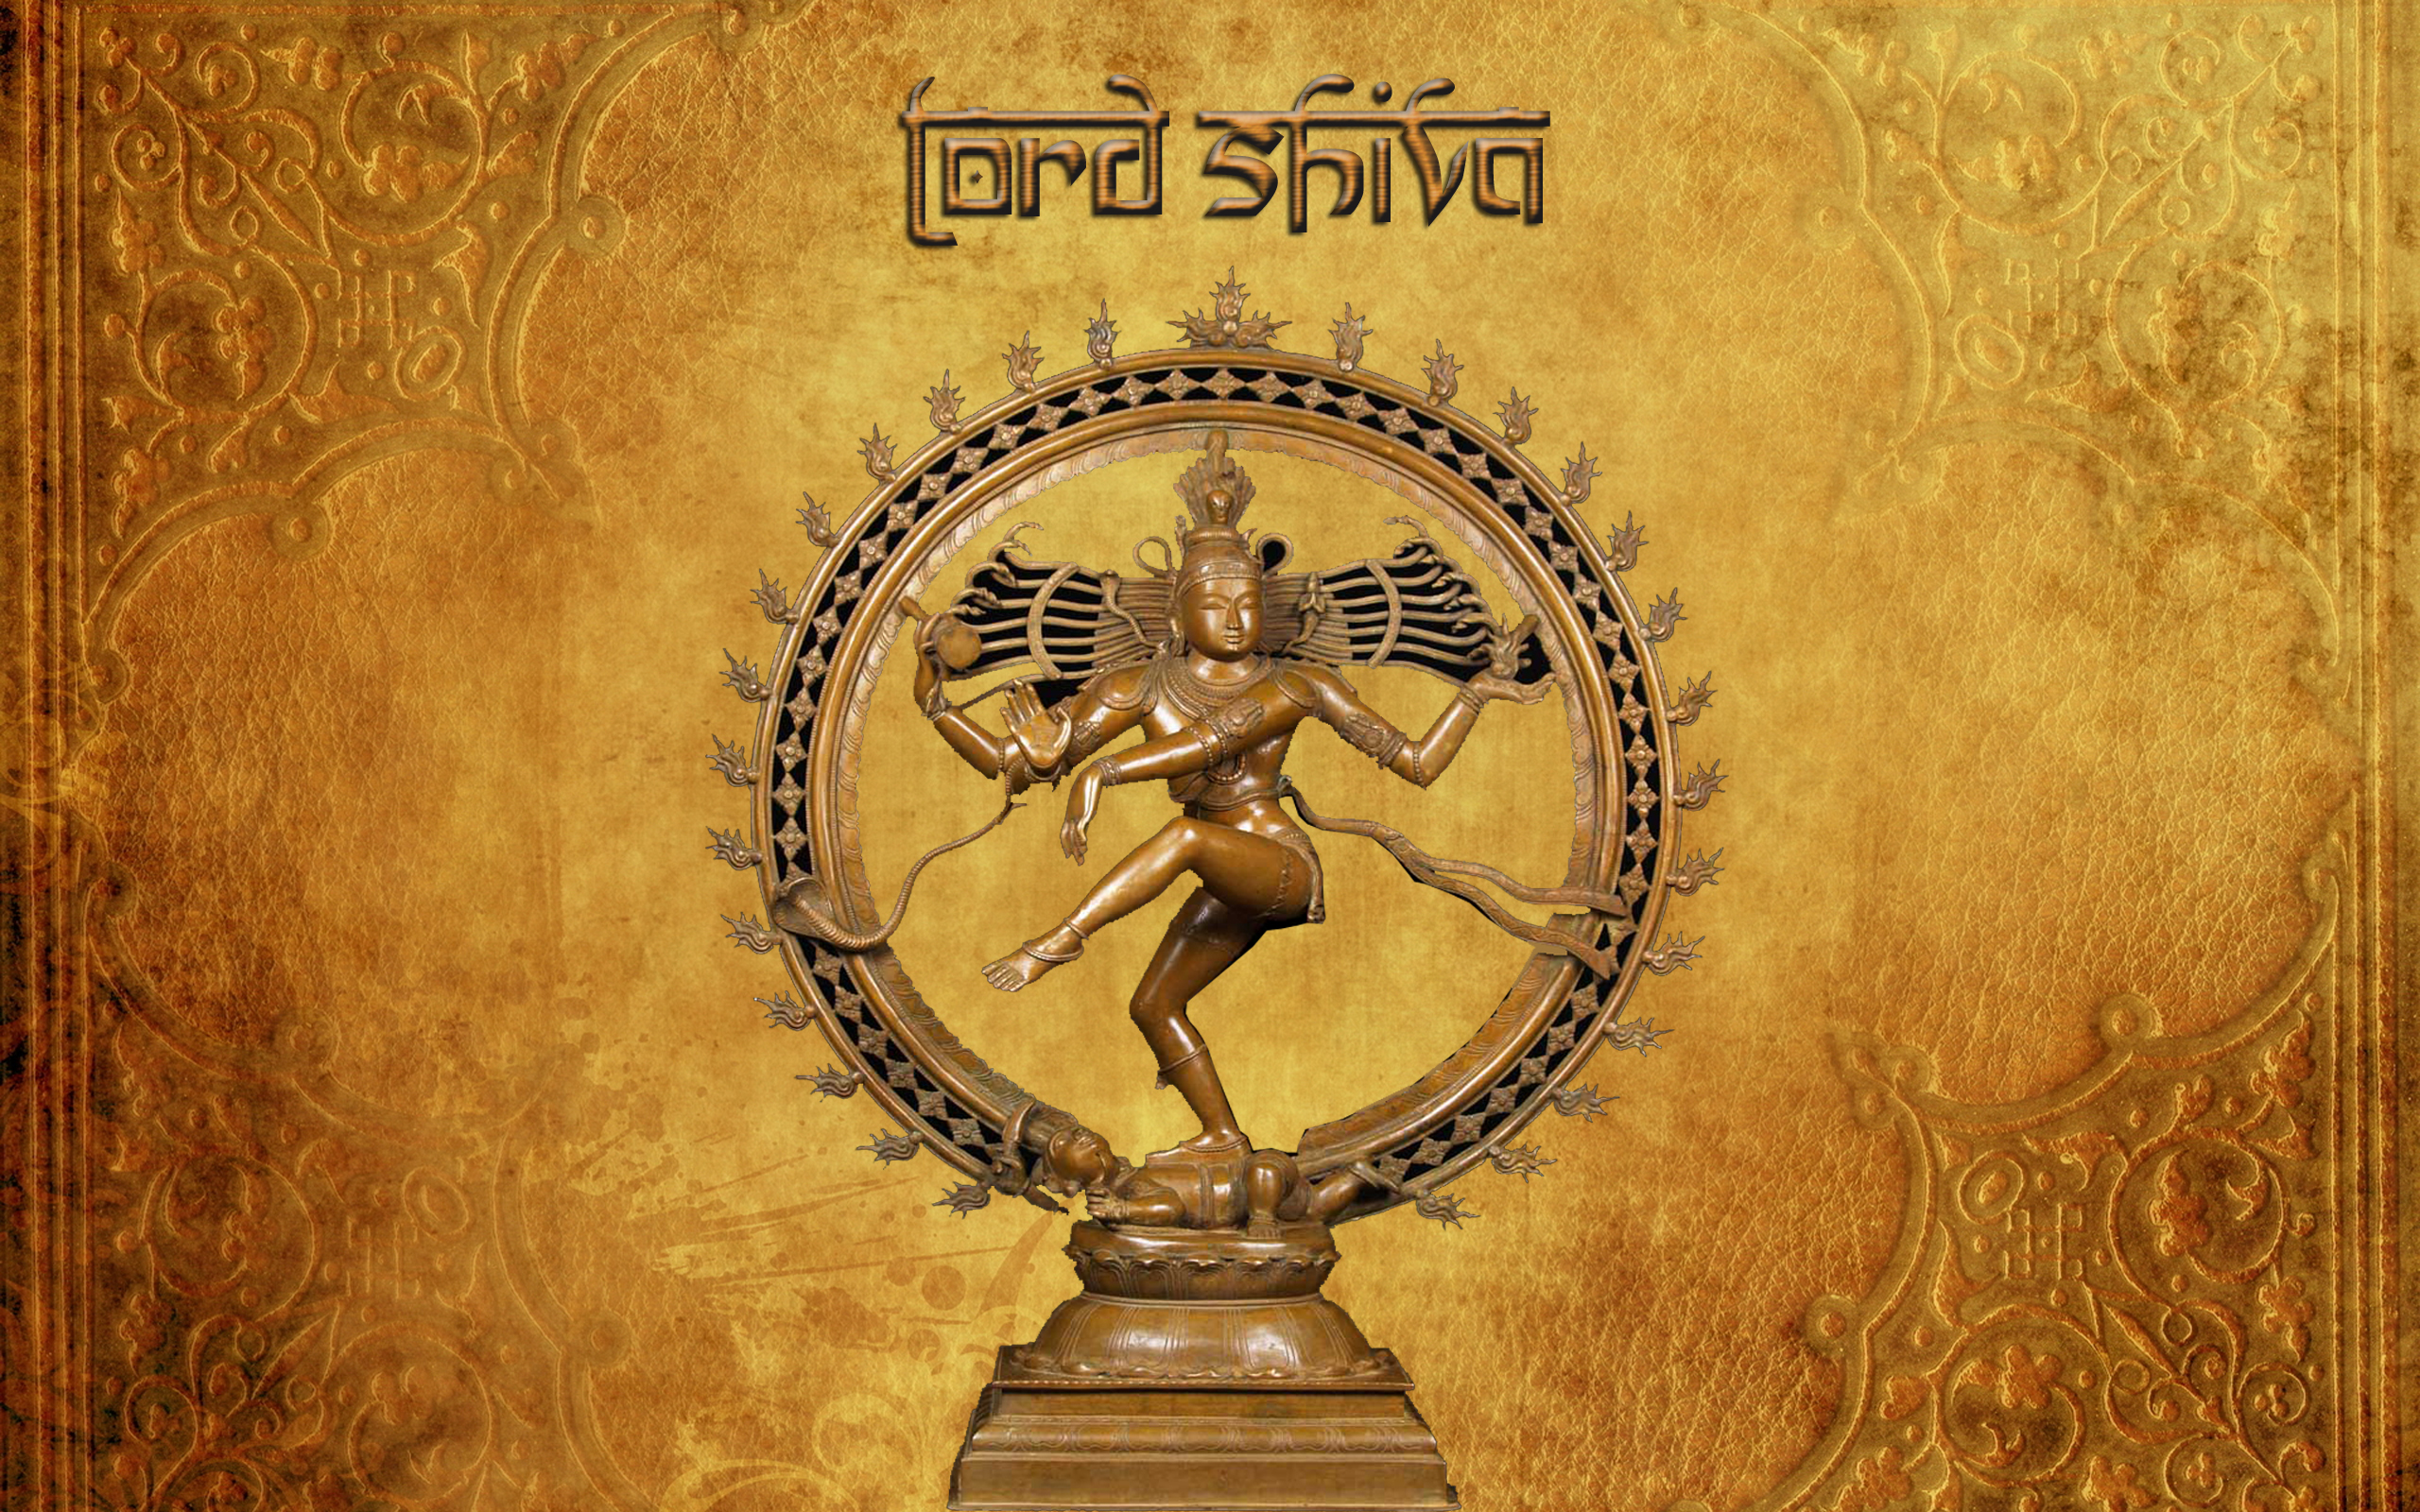 SHIVA HD WALLPAPERS 1080P PICTURES IMAGES HD 2560x1600